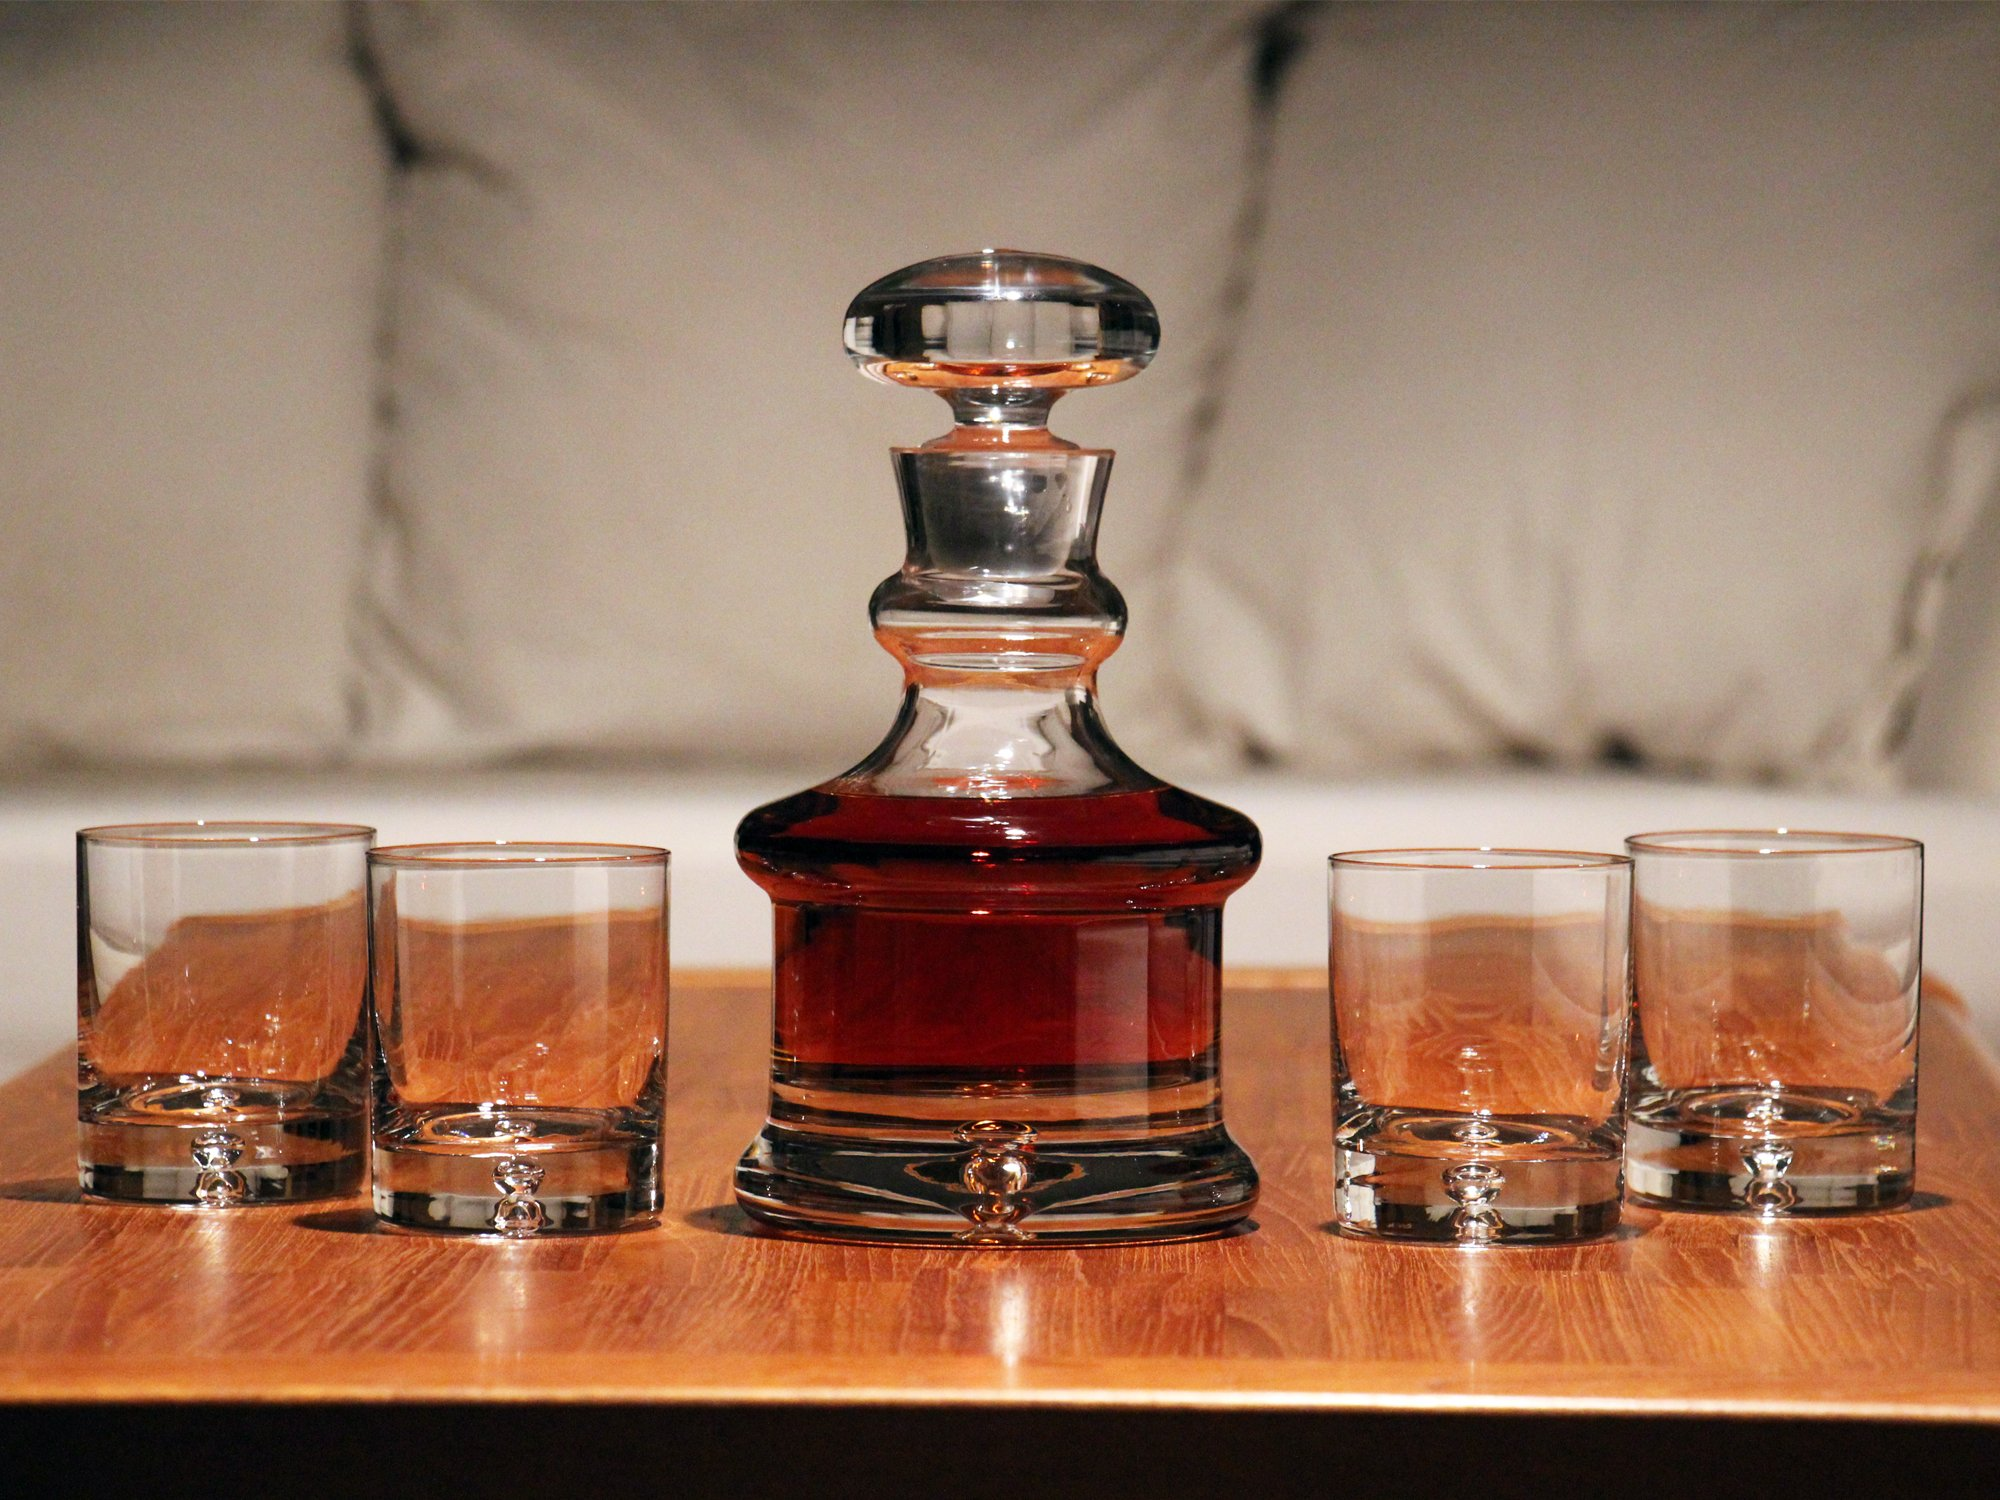 Ravenscroft Crystal 125th Anniversary Larchmont Decanter Gift Set, Includes One (1) 30-ounce Decanter and Four (4) 10.5-ounce DOF Tumbler Glasses.